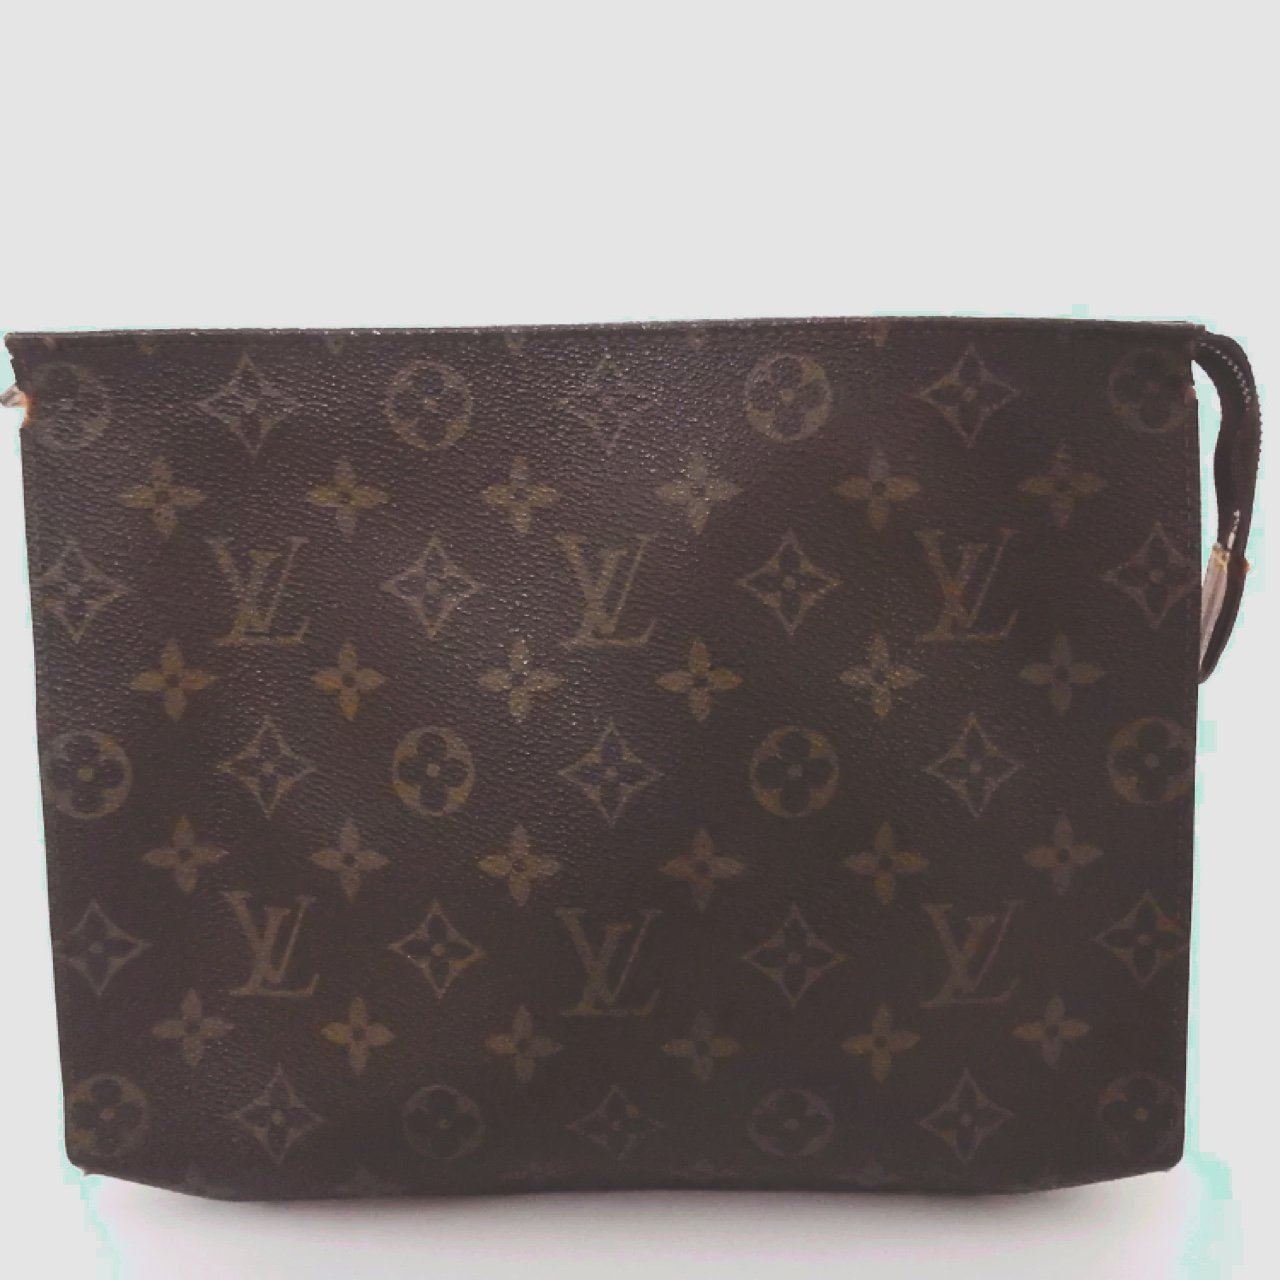 f4f3aa5537f @misslisaxo. 3 years ago. London, UK. Louis Vuitton toiletry pouch 26 #lv  ...